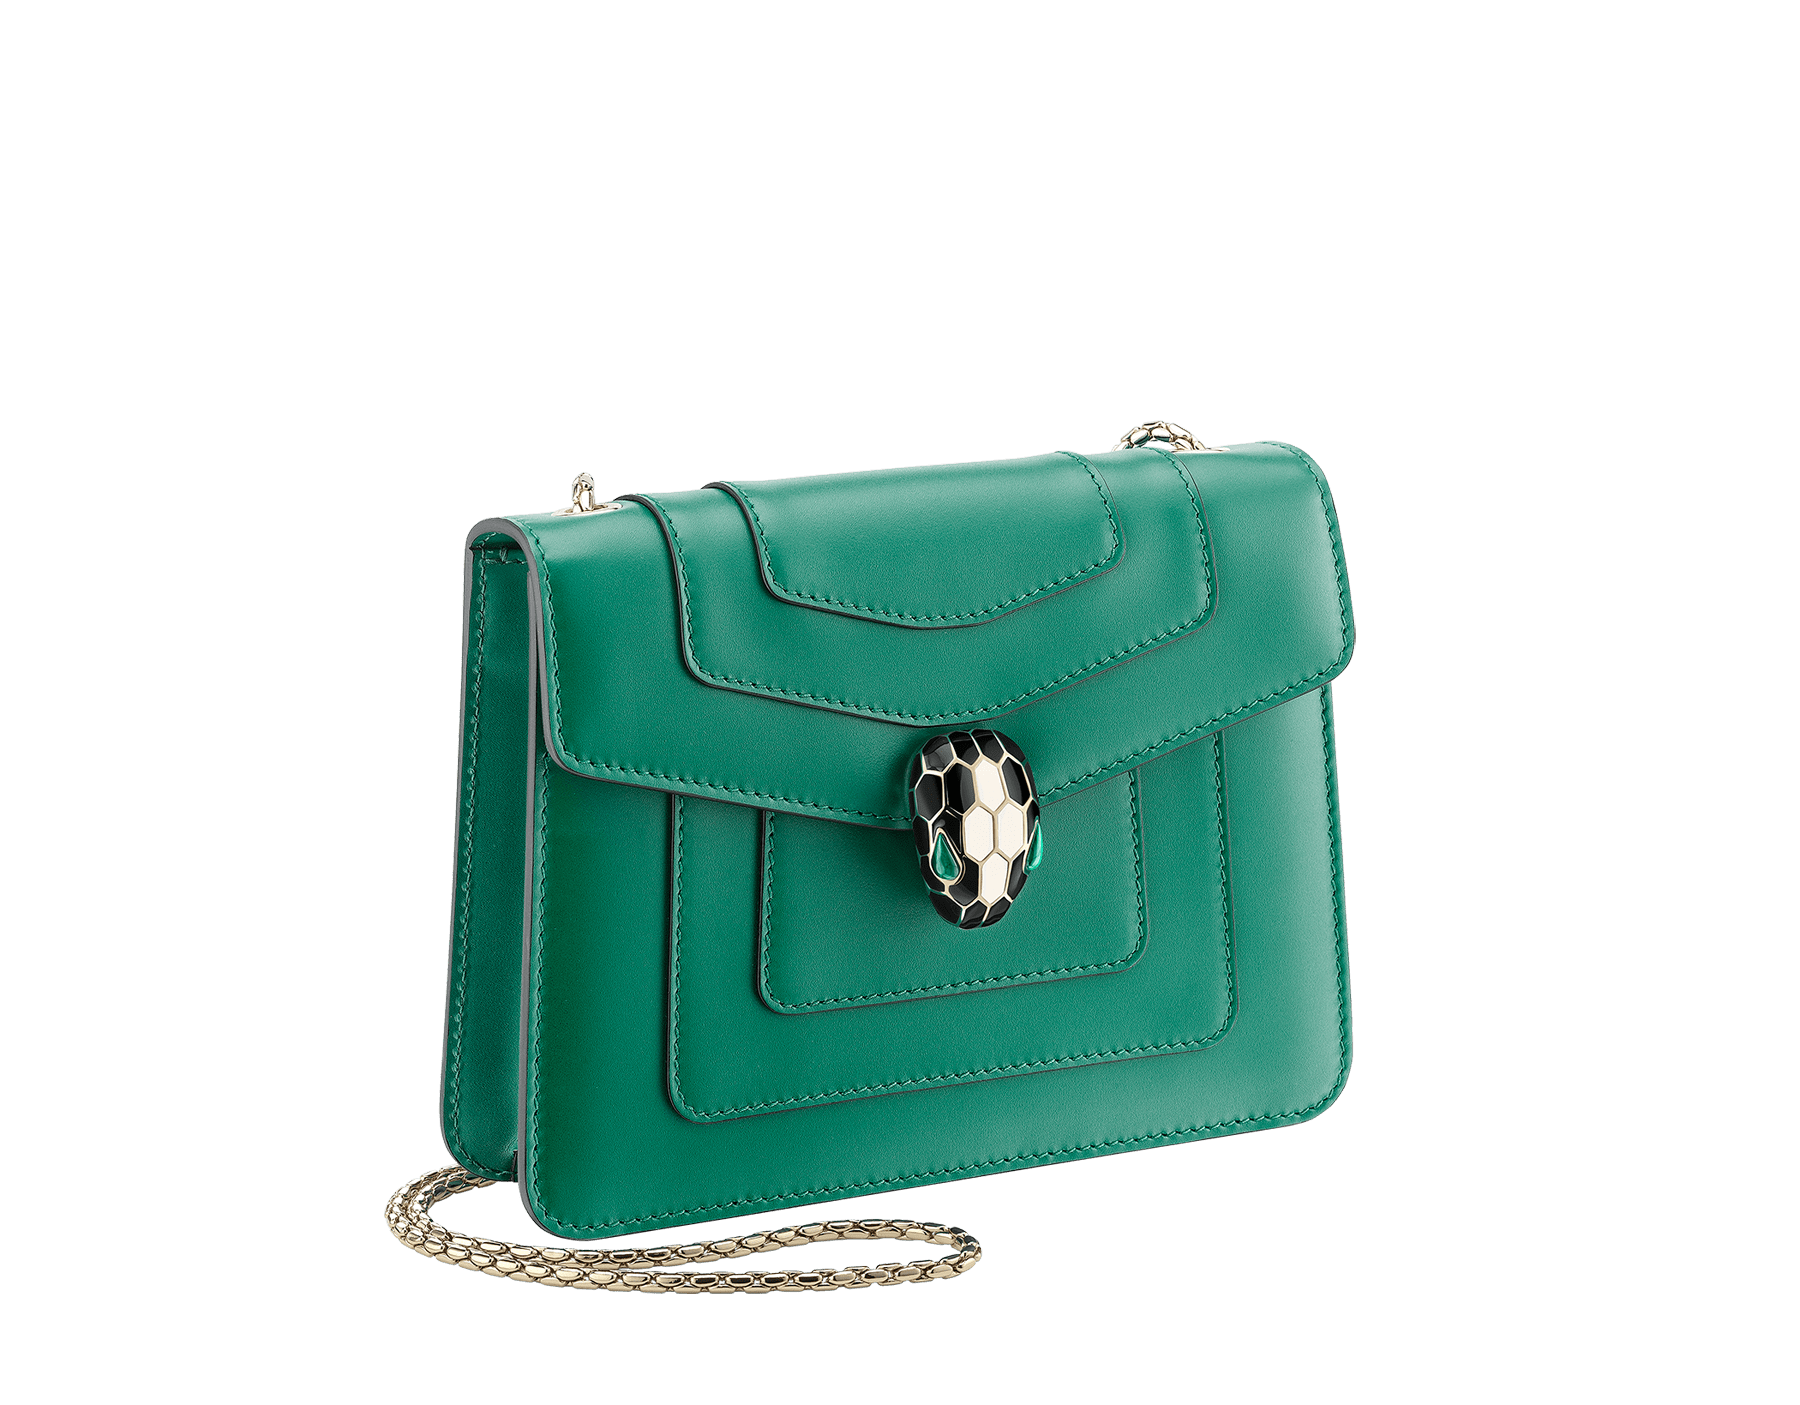 """Serpenti Forever"" crossbody bag in emerald-green calfskin with amethyst-purple grosgrain inner lining. Iconic snakehead closure in light gold-plated brass embellished with black and agate-white enamel and green malachite eyes. 422-CLa image 2"